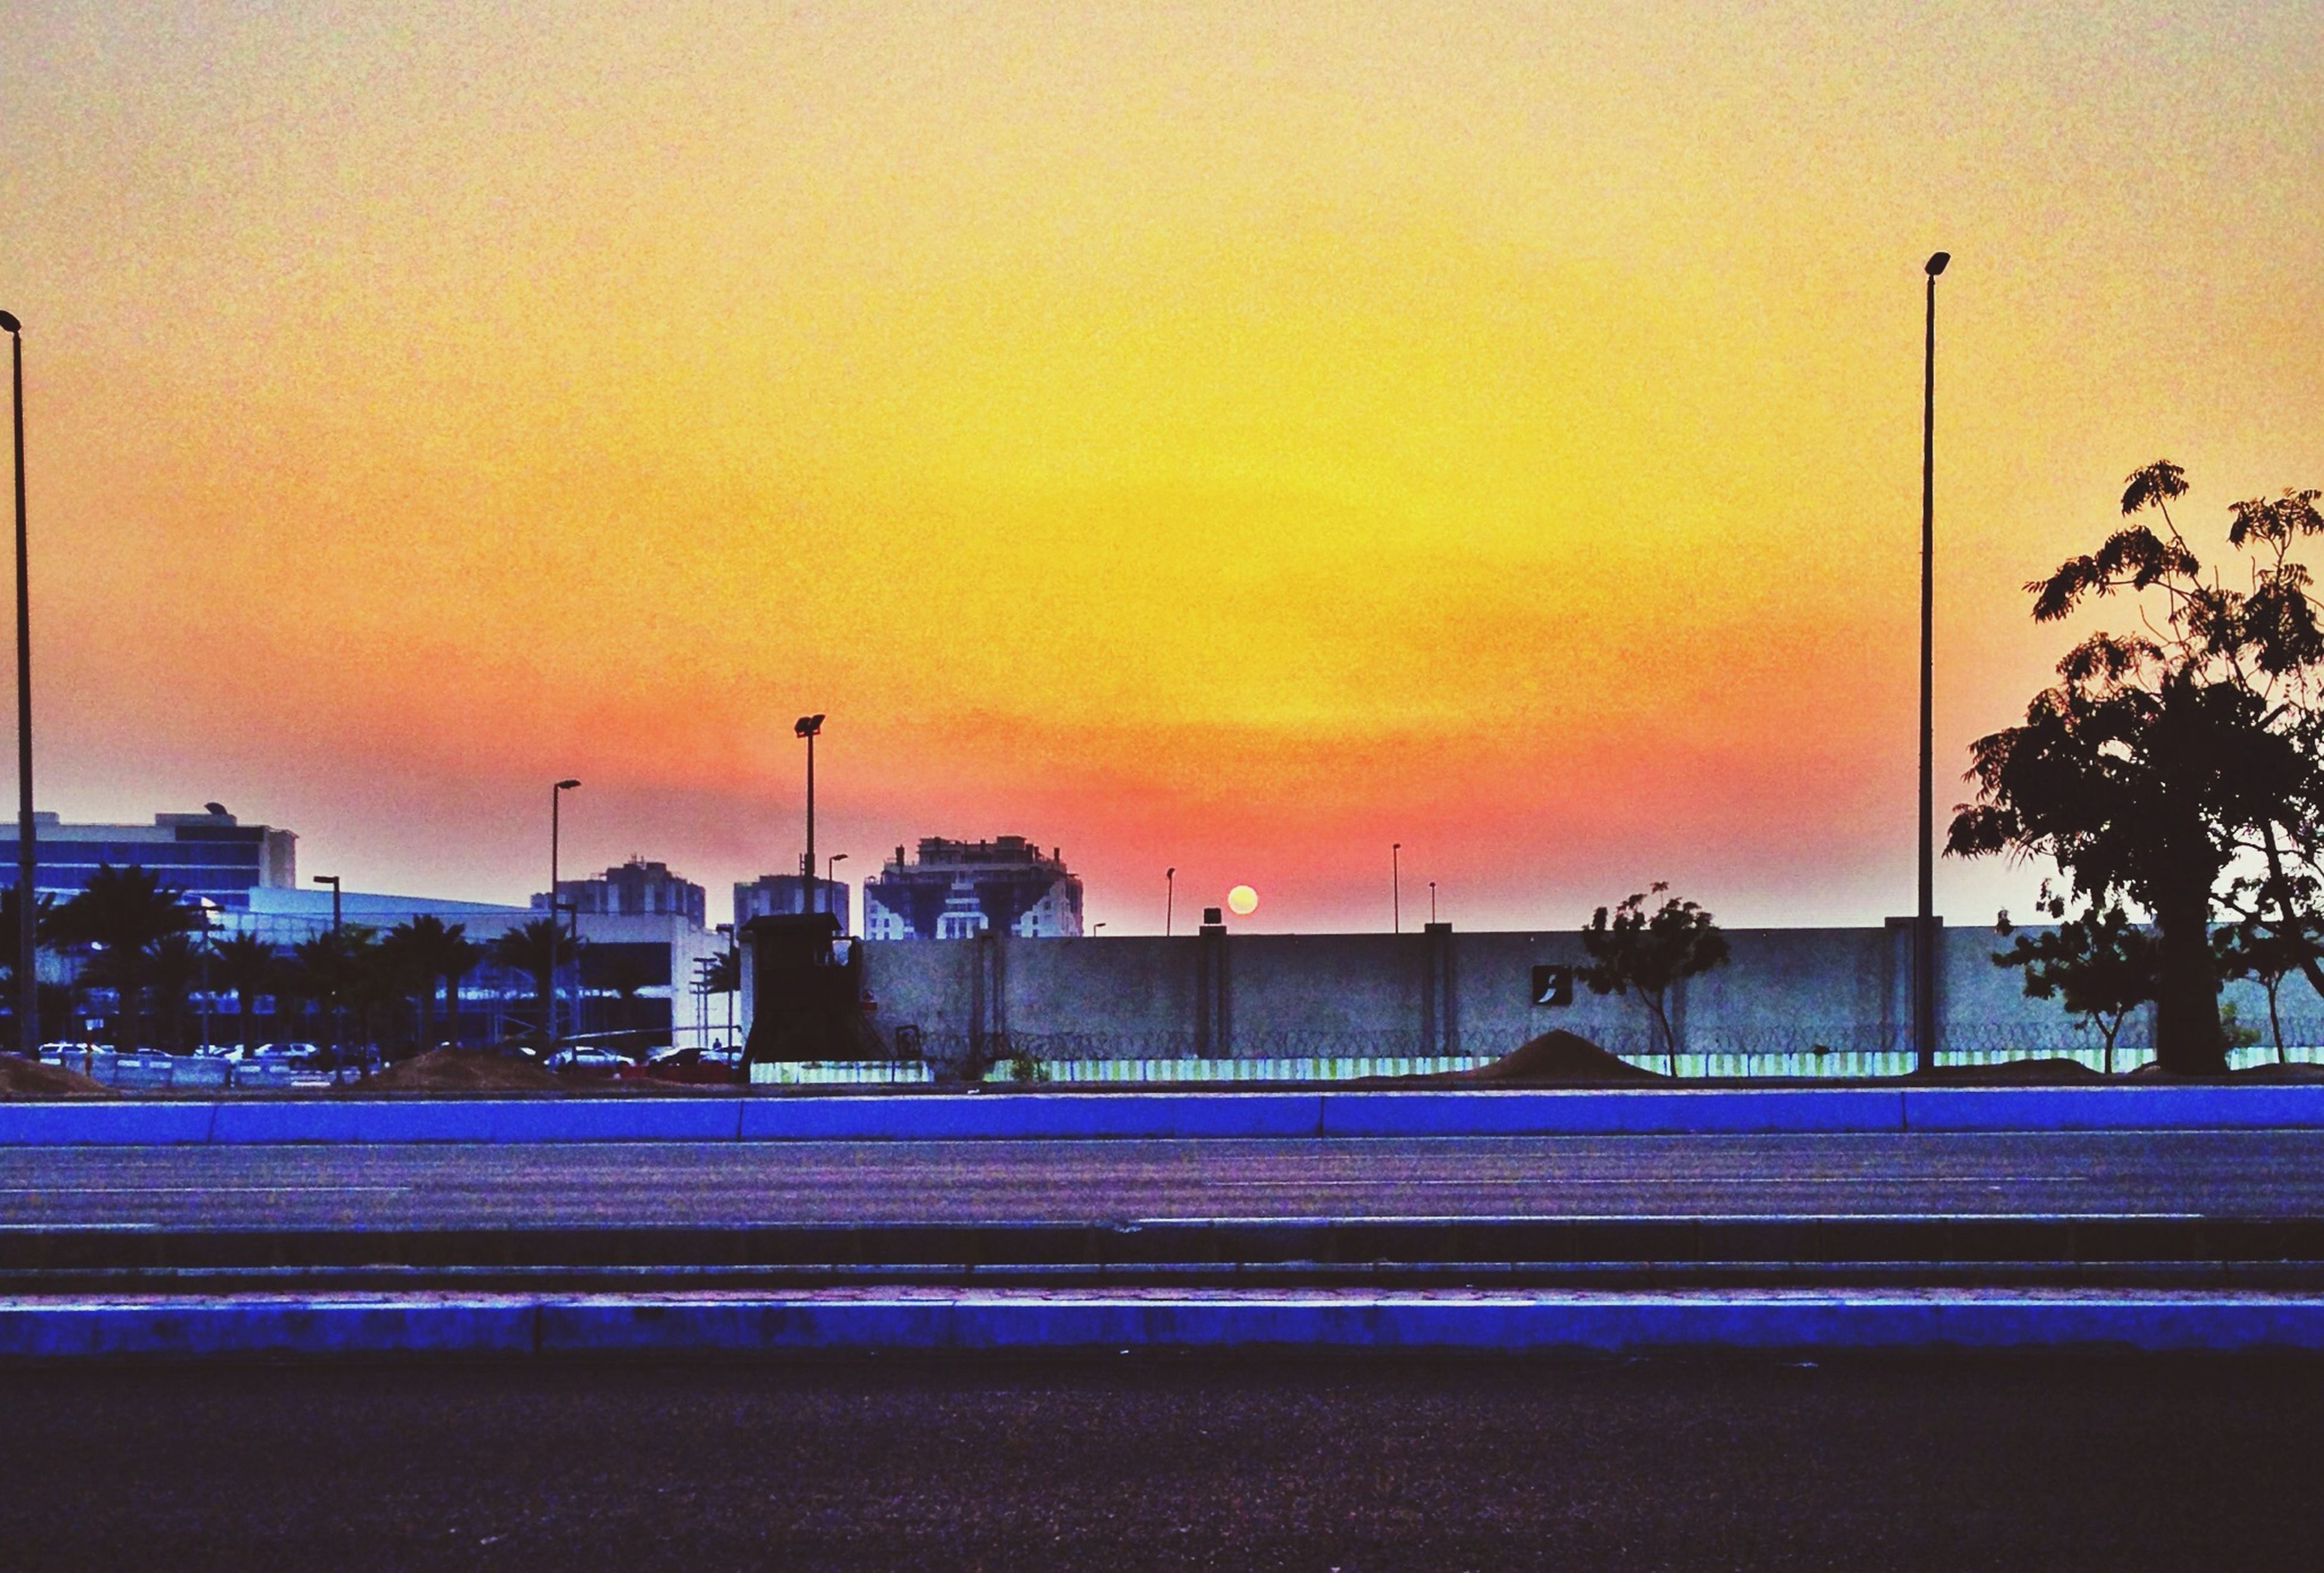 sunset, orange color, illuminated, architecture, built structure, sky, building exterior, street light, lighting equipment, transportation, dusk, motion, outdoors, light trail, city, no people, road, railing, clear sky, connection